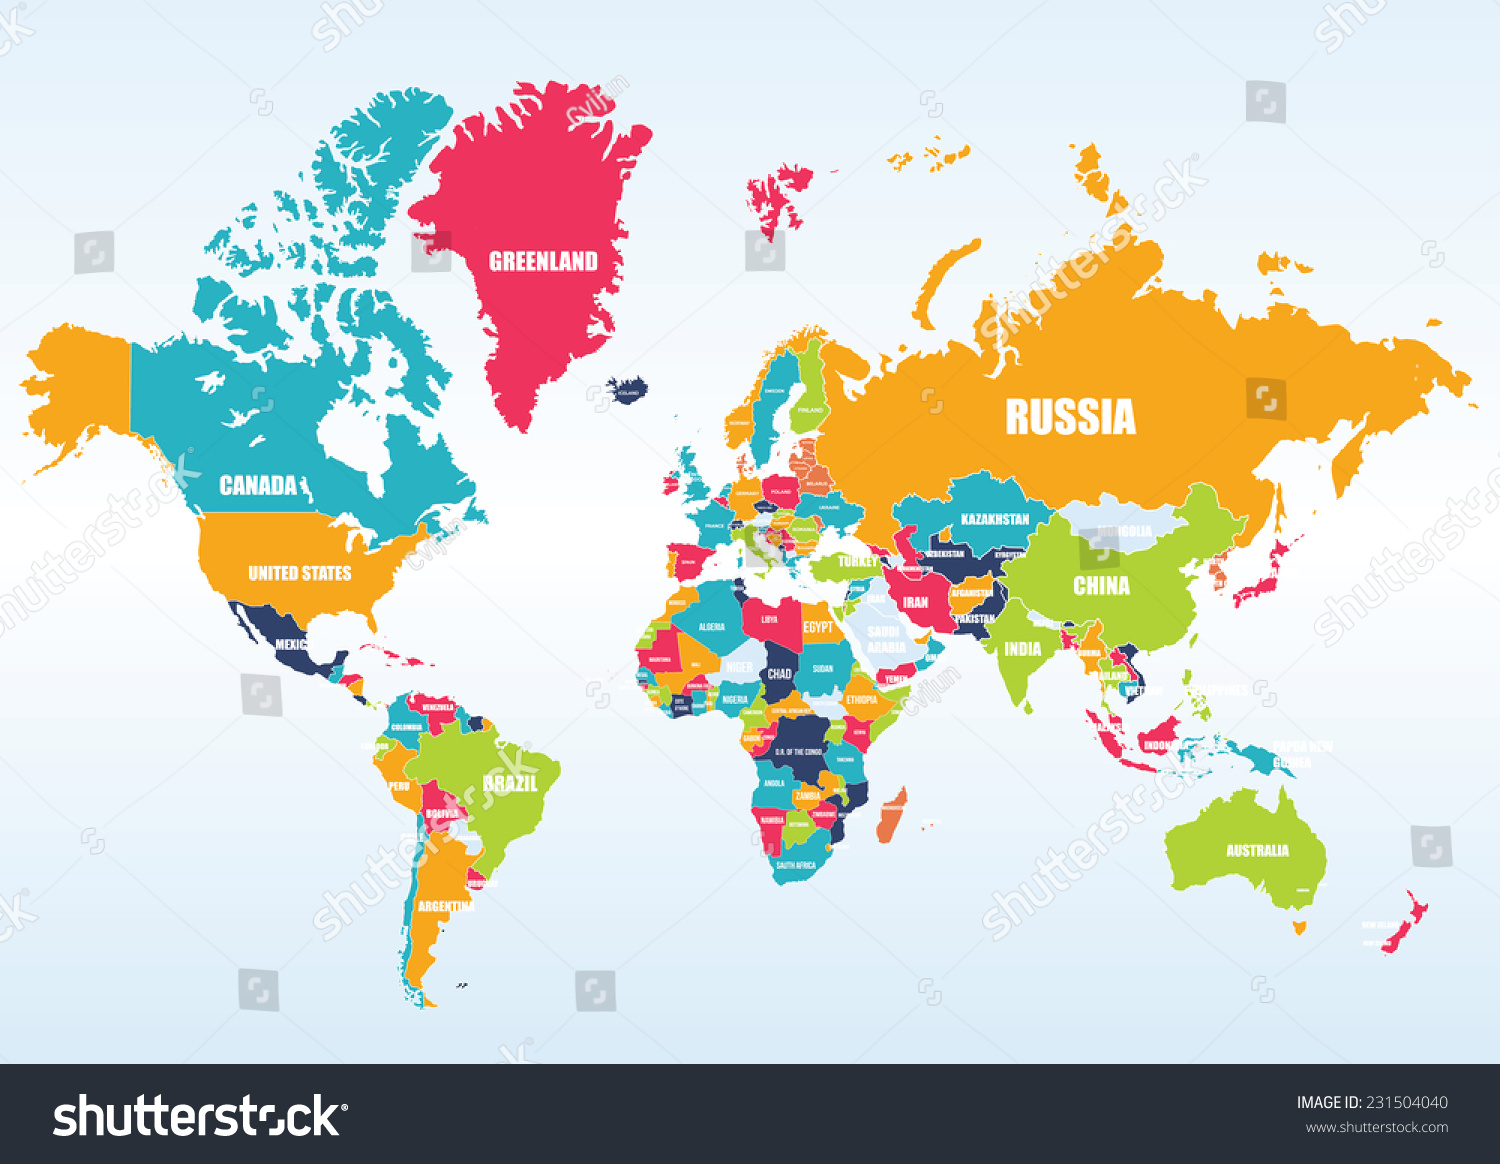 World map-countries #231504040